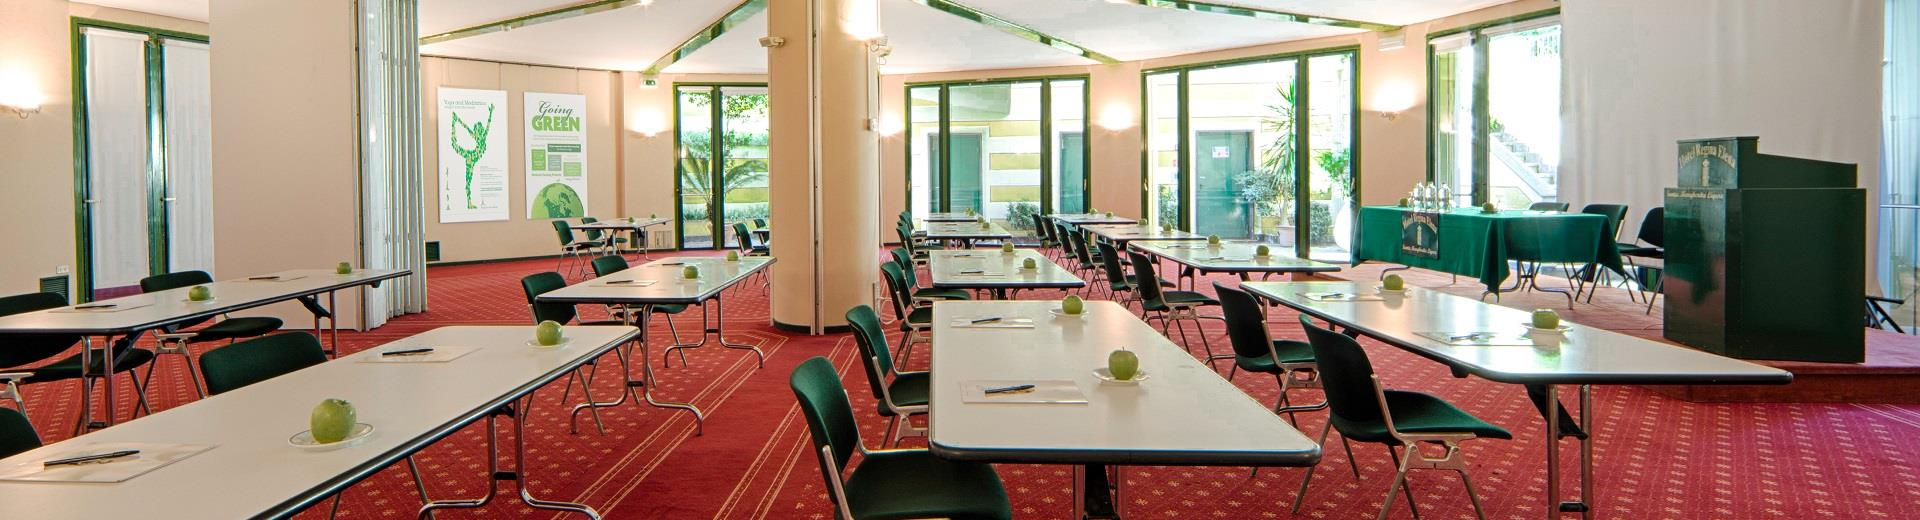 Book the meeting rooms of the best Western Hotel Regina Elena by the sea for your Congress!